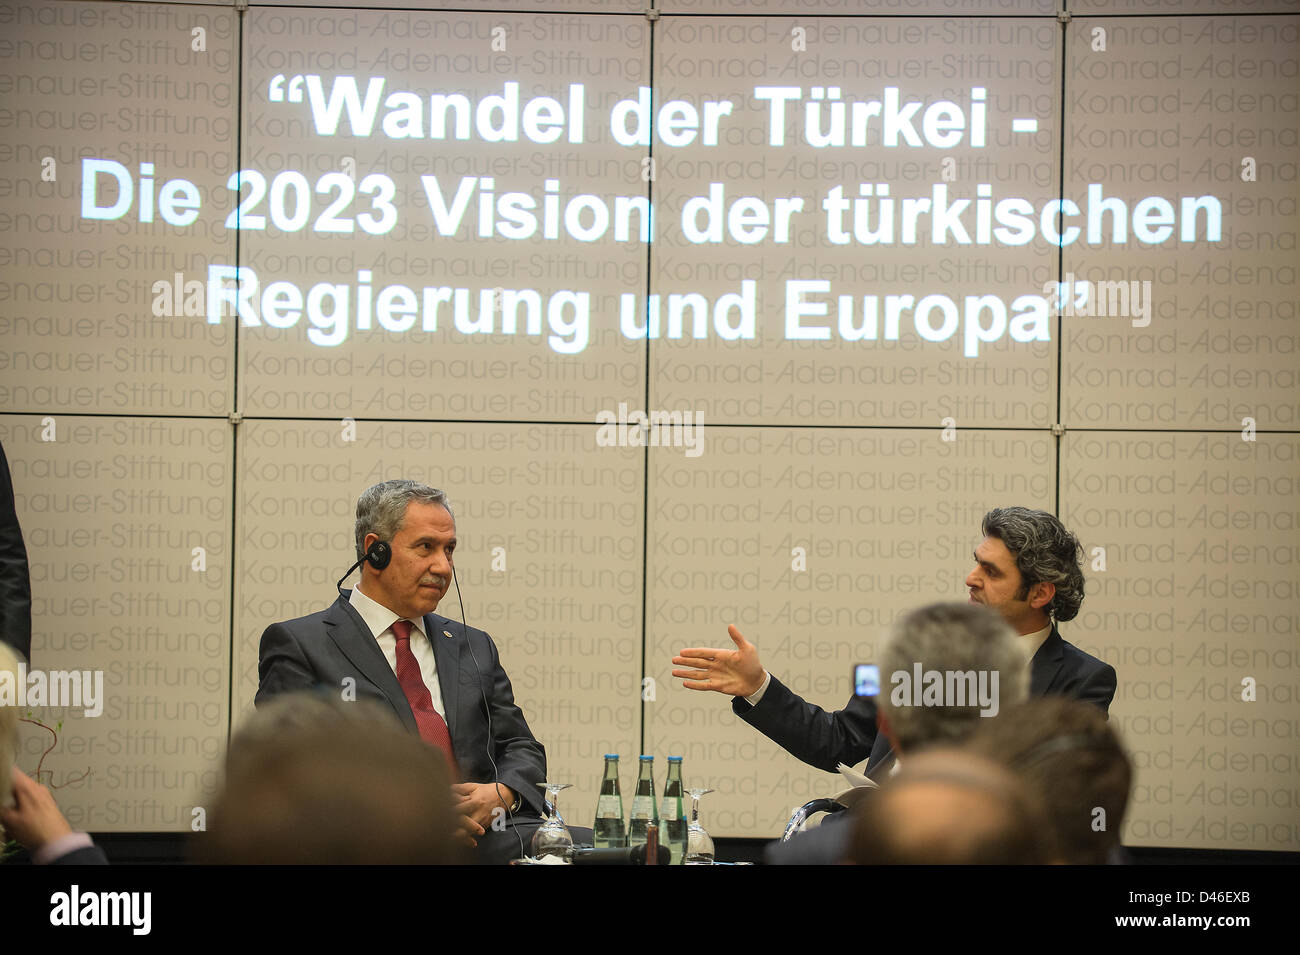 Deputy Prime Minister of Turkey Bülent Arinç gives a speech about the 2023 Vision of the Turkish Government - Stock Image